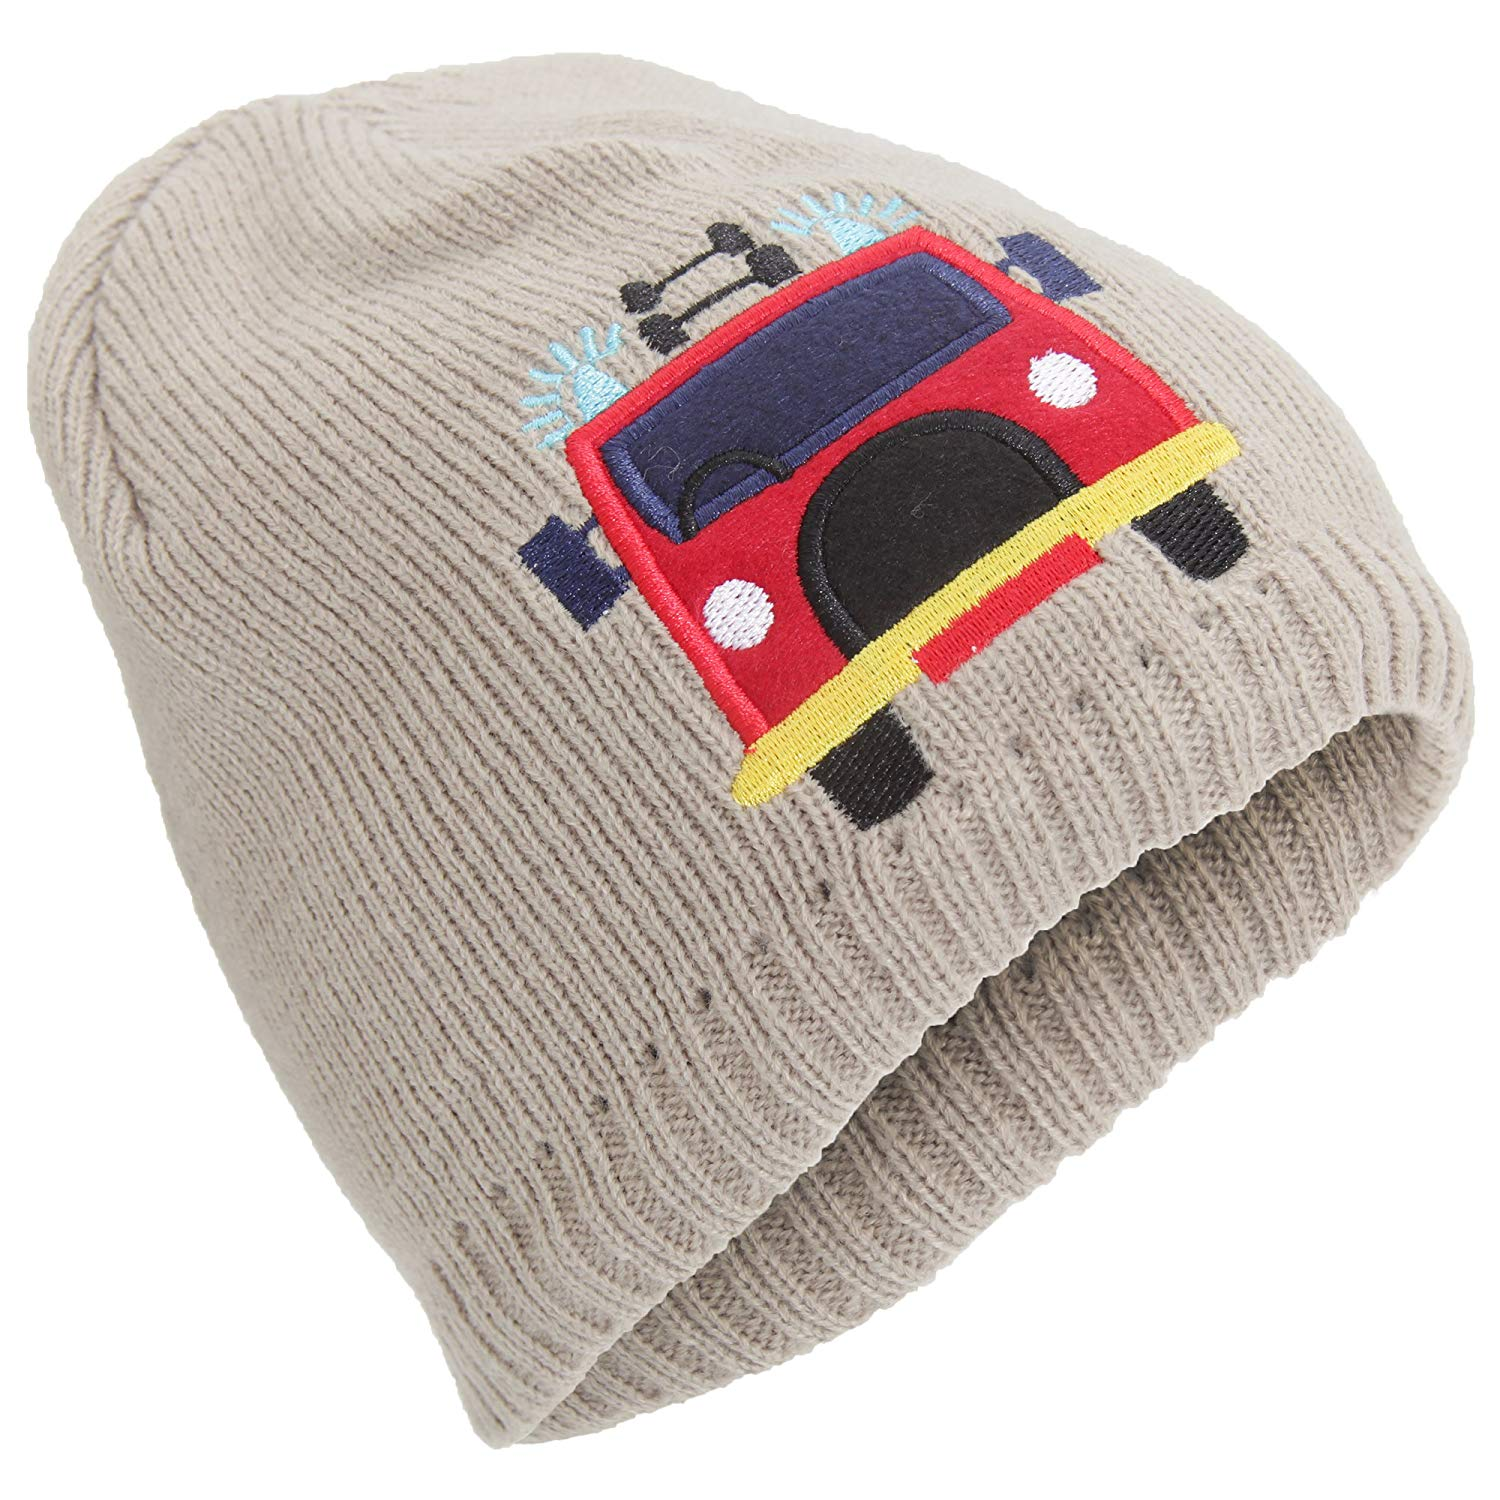 1b7c2f4c361 Get Quotations · Universal Textiles Childrens Boys Embroidered Fleece Lined Winter  Beanie Hat